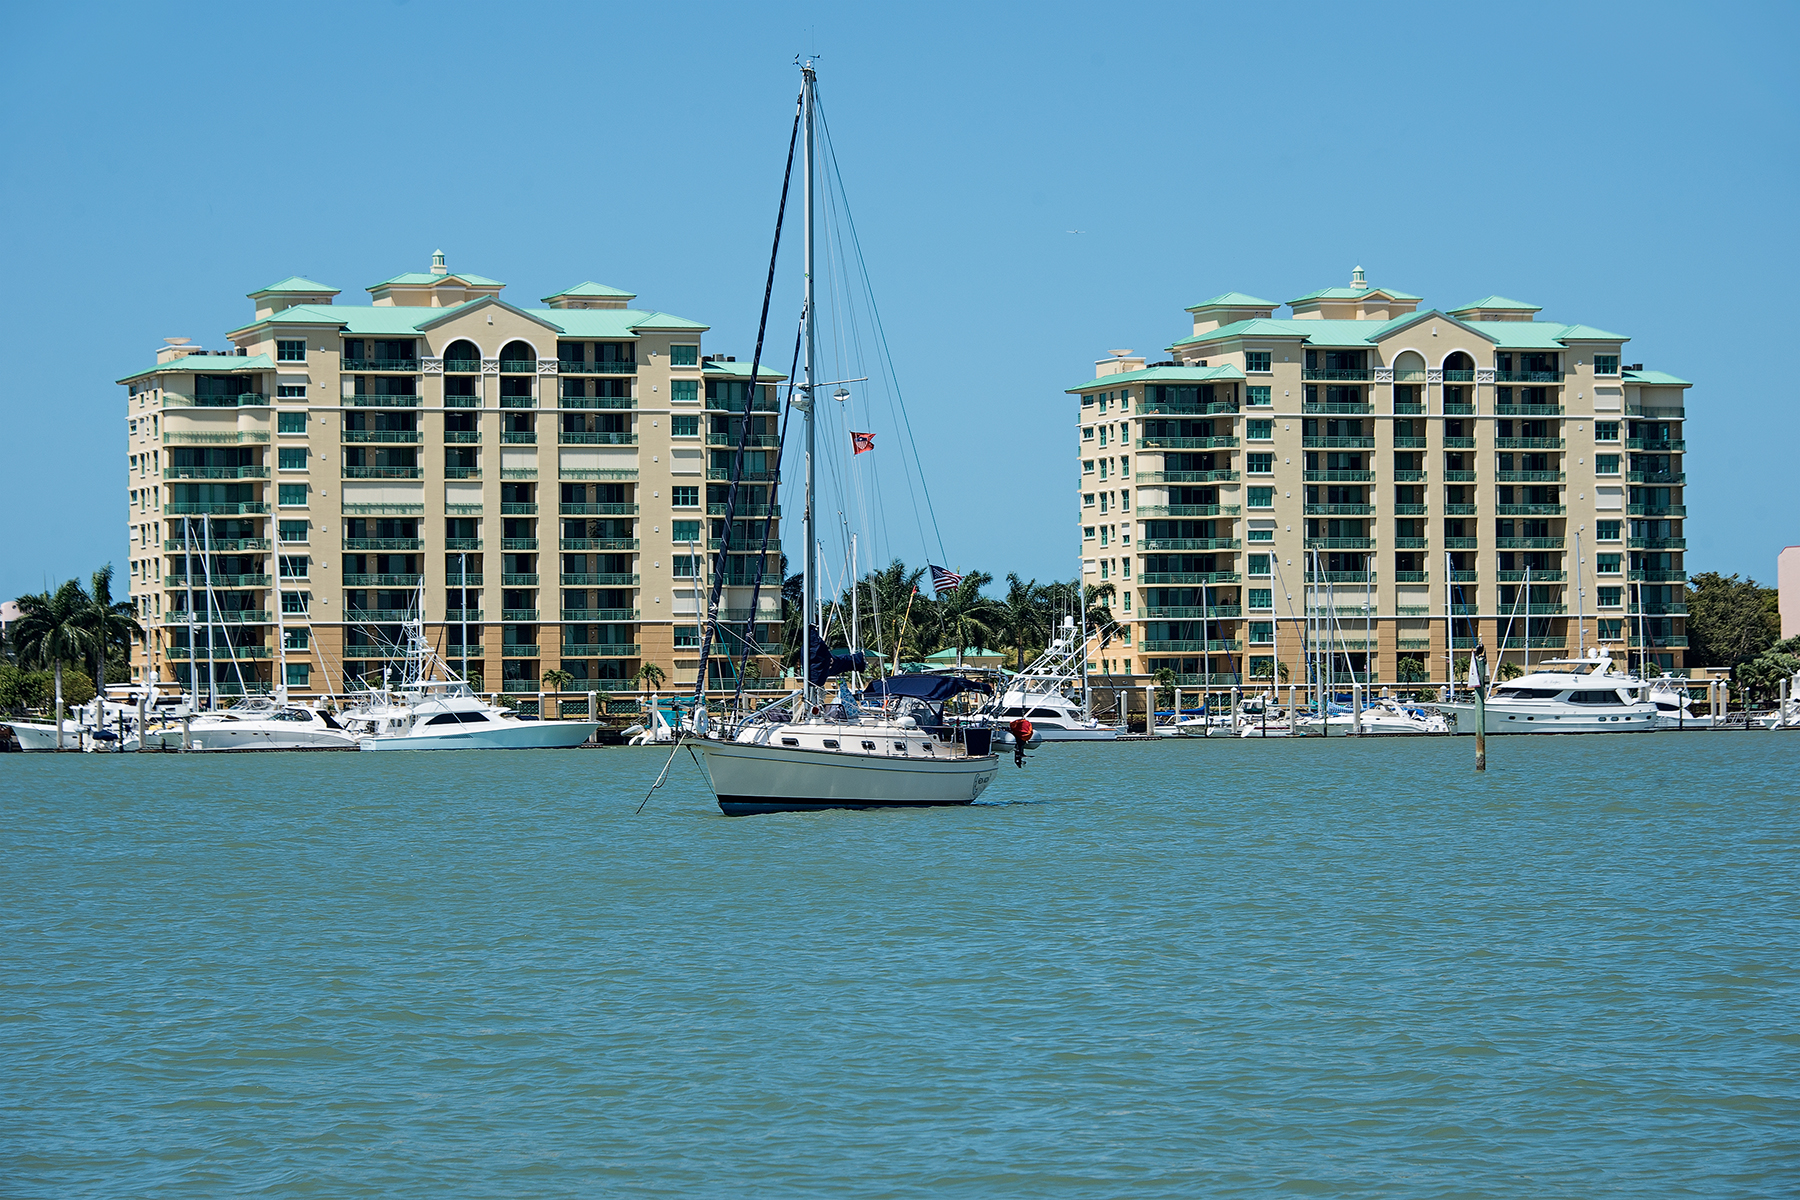 Condominium for Sale at MARCO ISLAND - PIER 81 1079 Bald Eagle Dr PH-2 Marco Island, Florida, 34145 United States